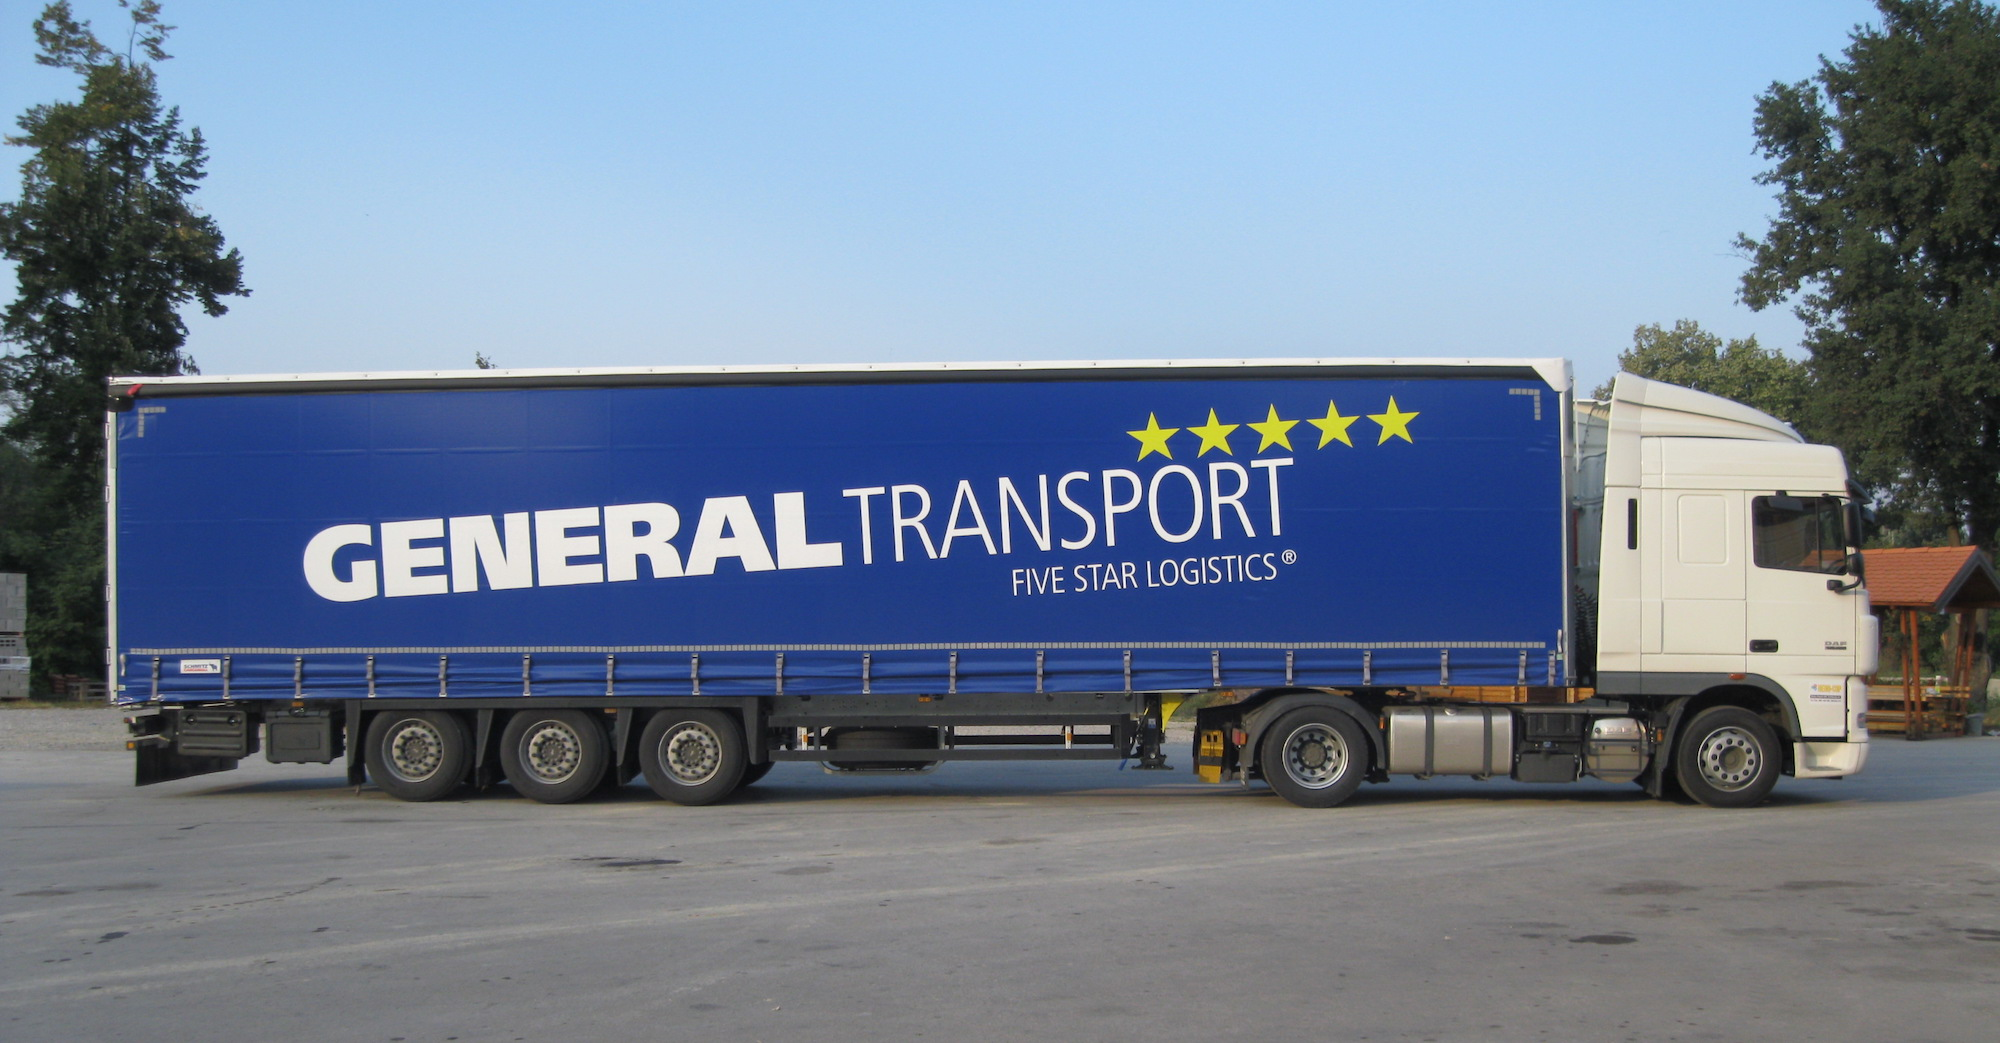 dae197e8633 General Transport – Five Star Logistics